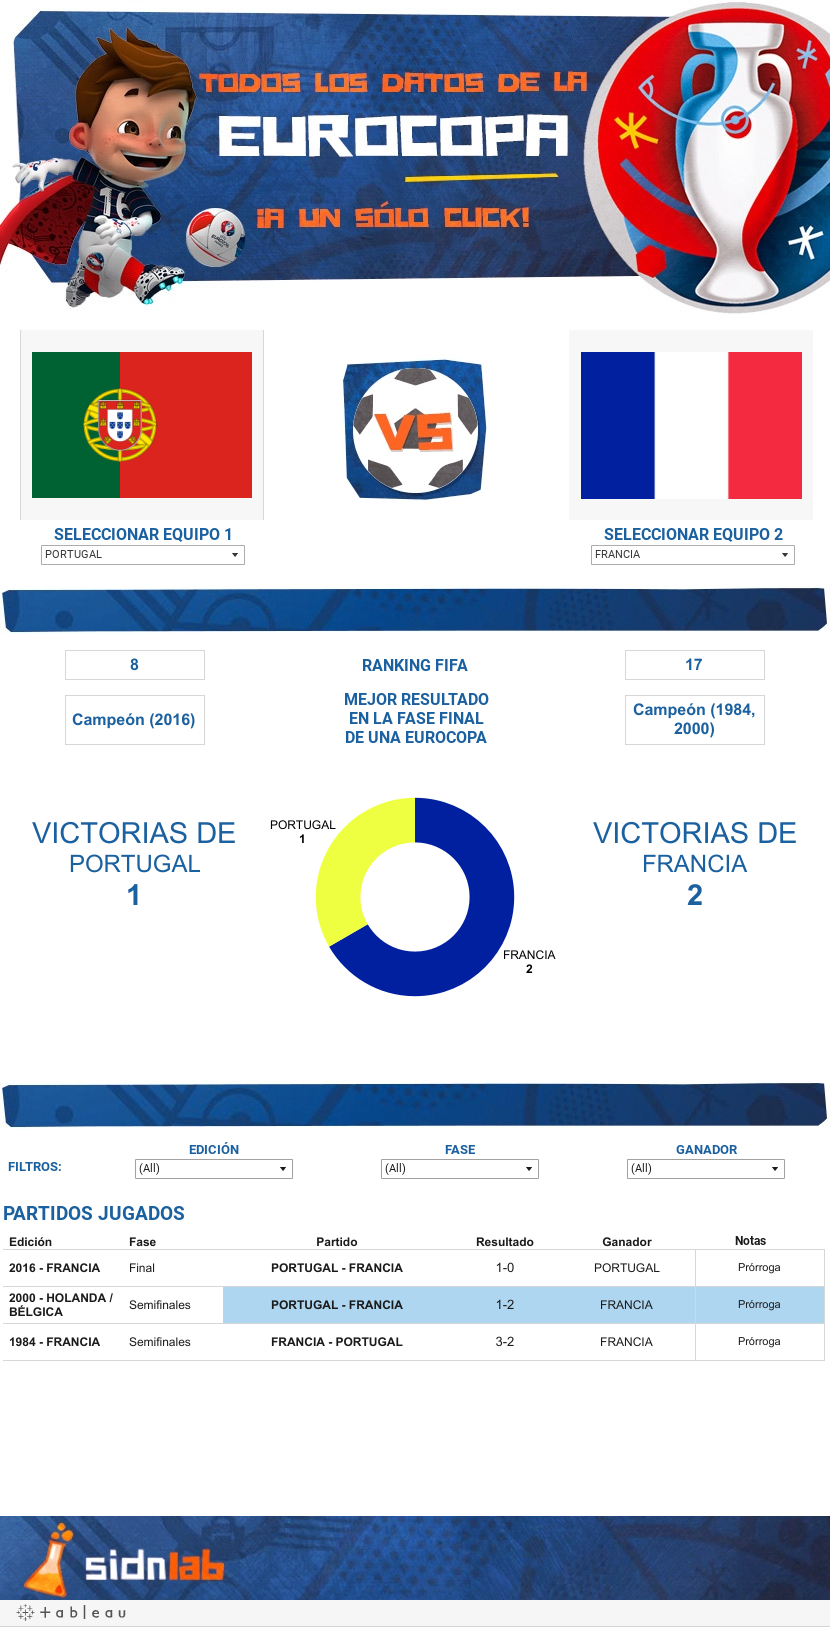 http://public.tableau.com/static/images/To/TodoslosdatosdelaEurocopa/Eurocopa/1.png